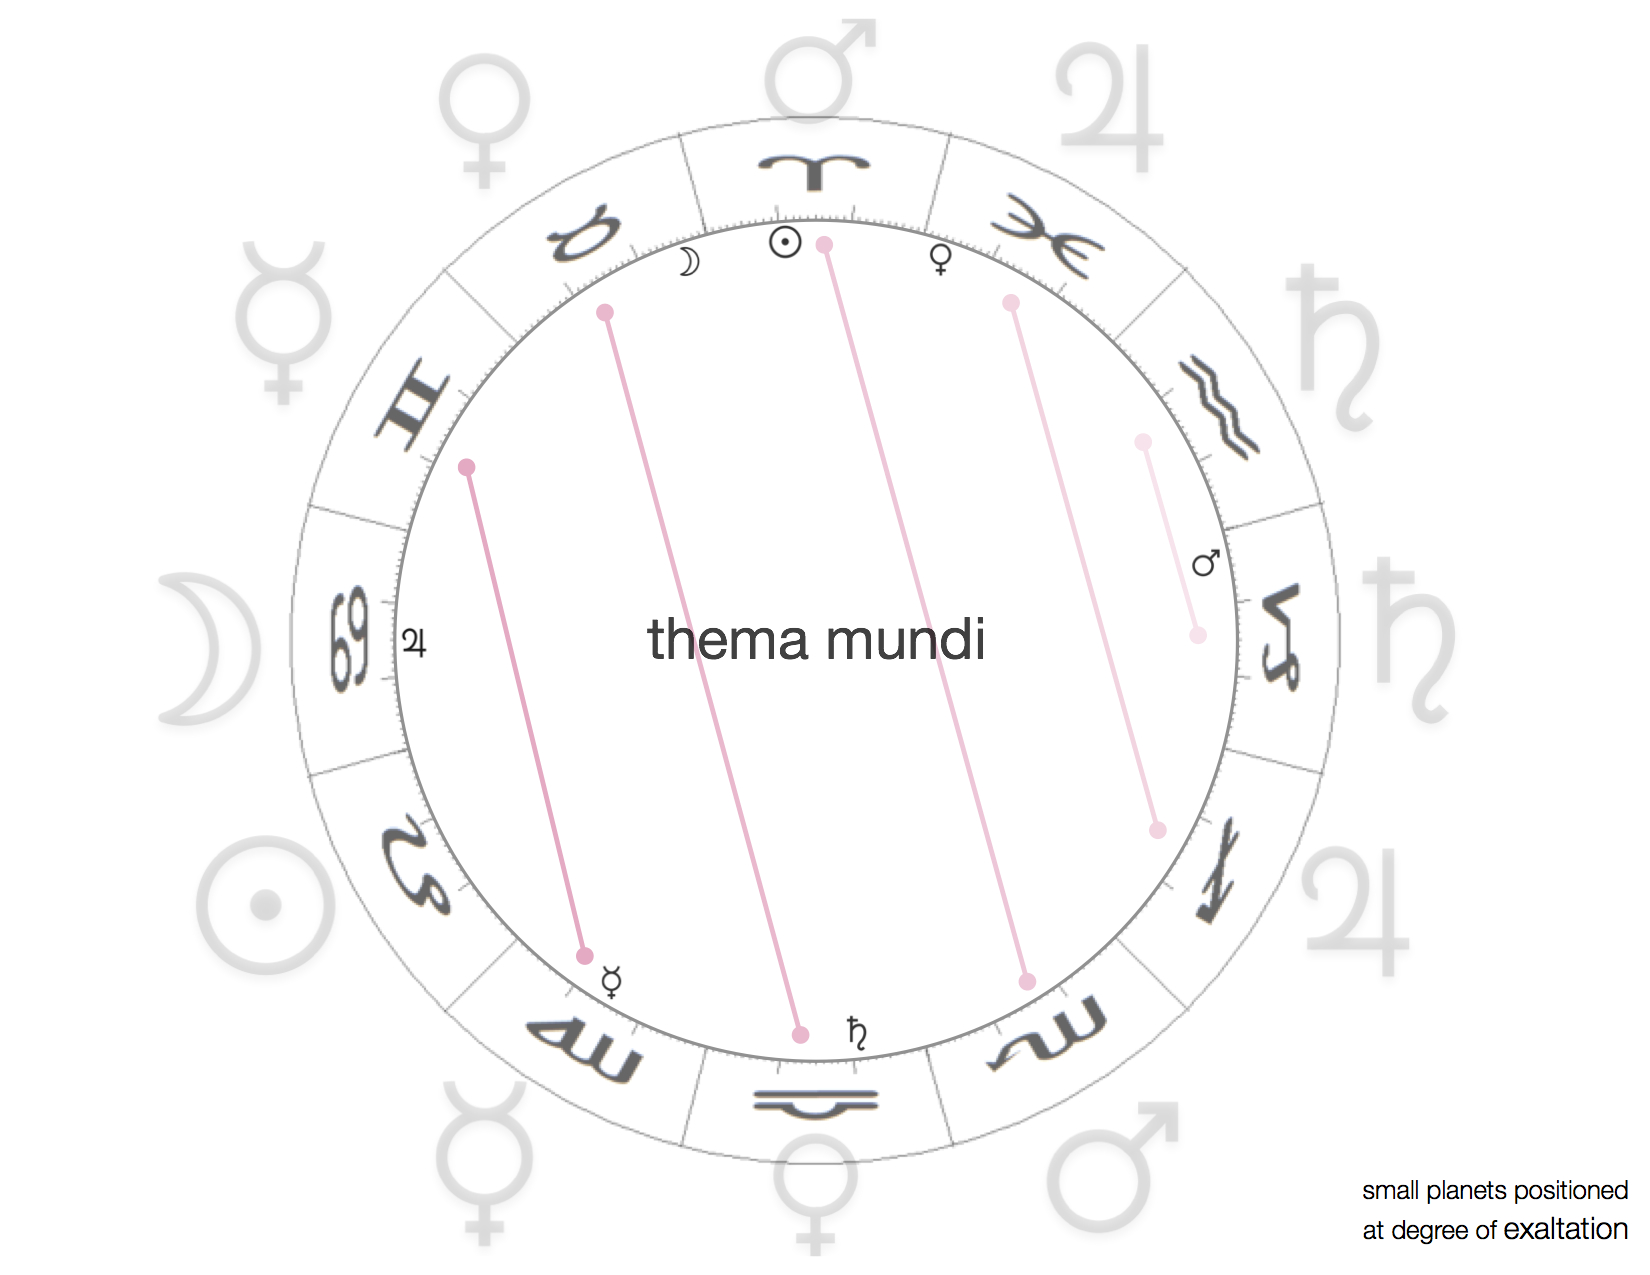 Thema Mundi by Kate Petty